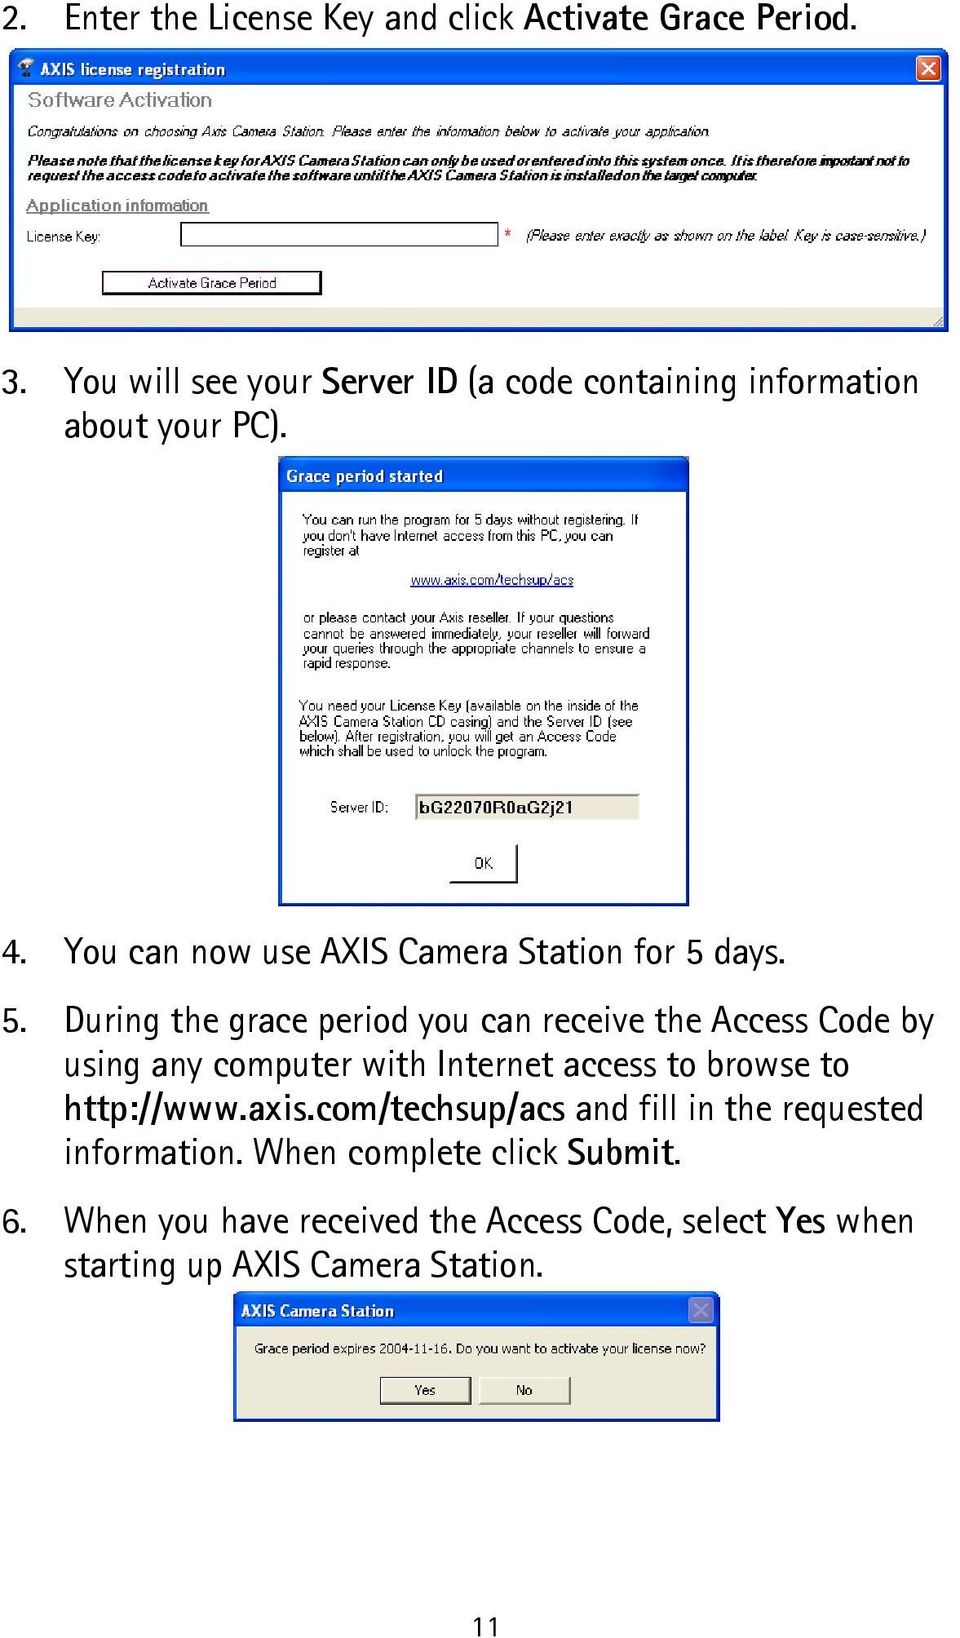 AXIS Camera Station Quick Installation Guide - PDF